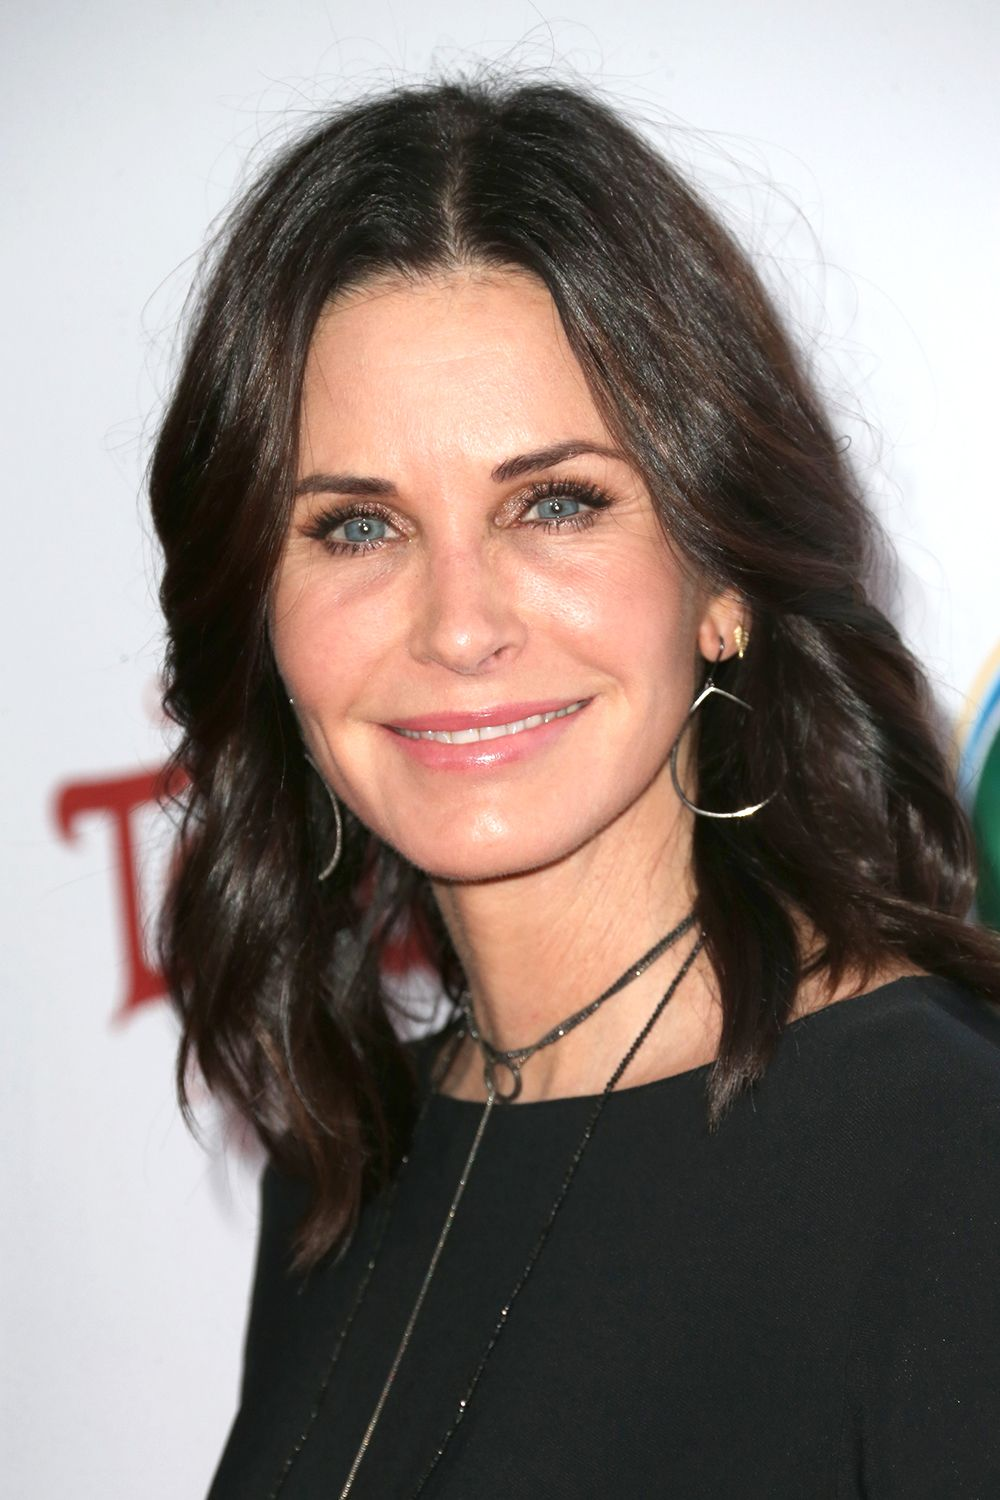 """Courteney Cox Cox, whose previously revealed that she got Botox, has had some plastic surgery regrets. """"I was trying to keep up with getting older and trying to chase that [youth],"""" Cox explained during her appearance on Running Wild With Bear Grylls ."""